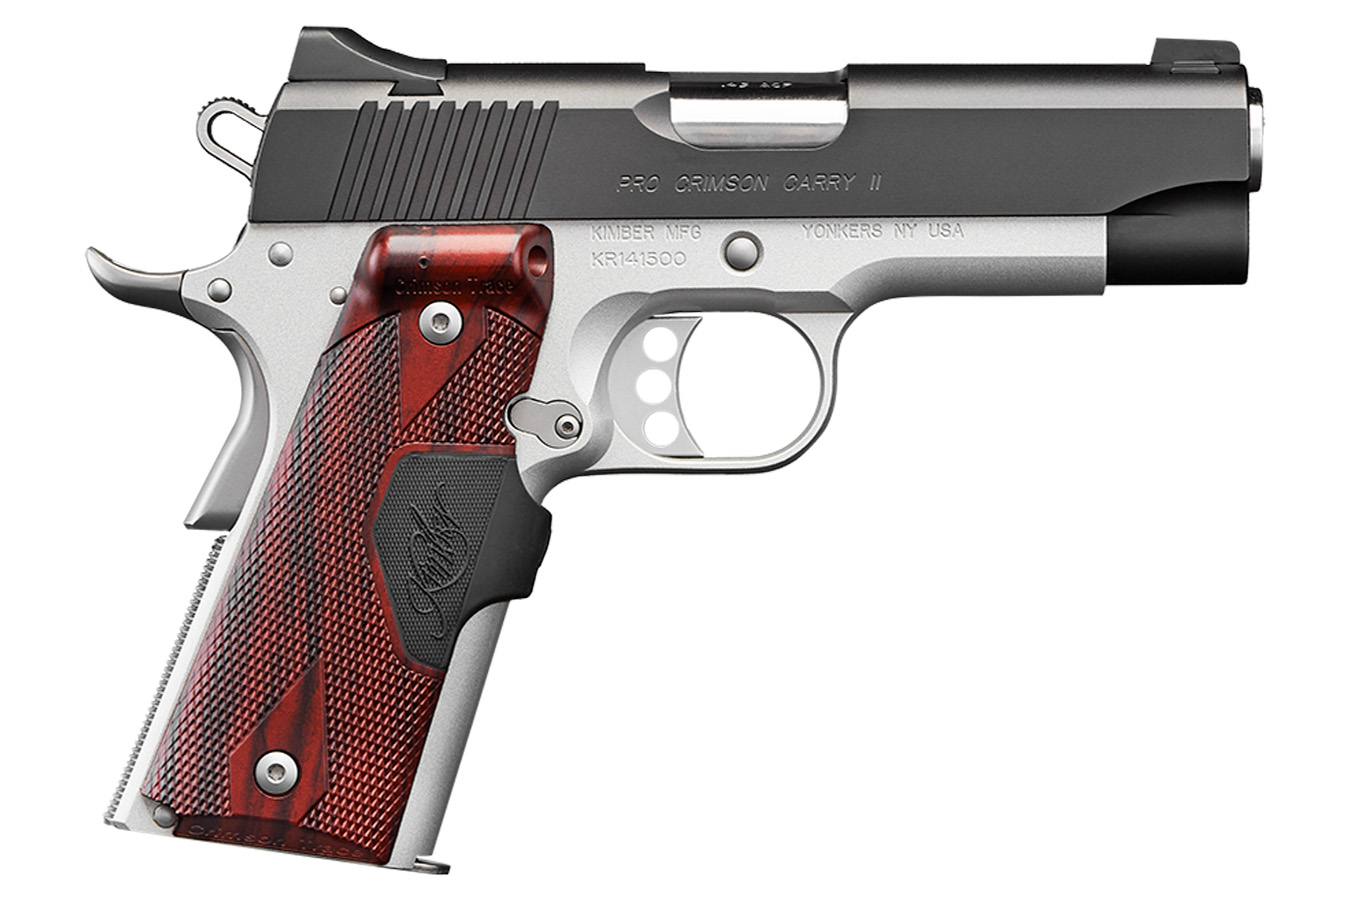 No. 11 Best Selling: KIMBER PRO CRIMSON CARRY II 45ACP RED LASER